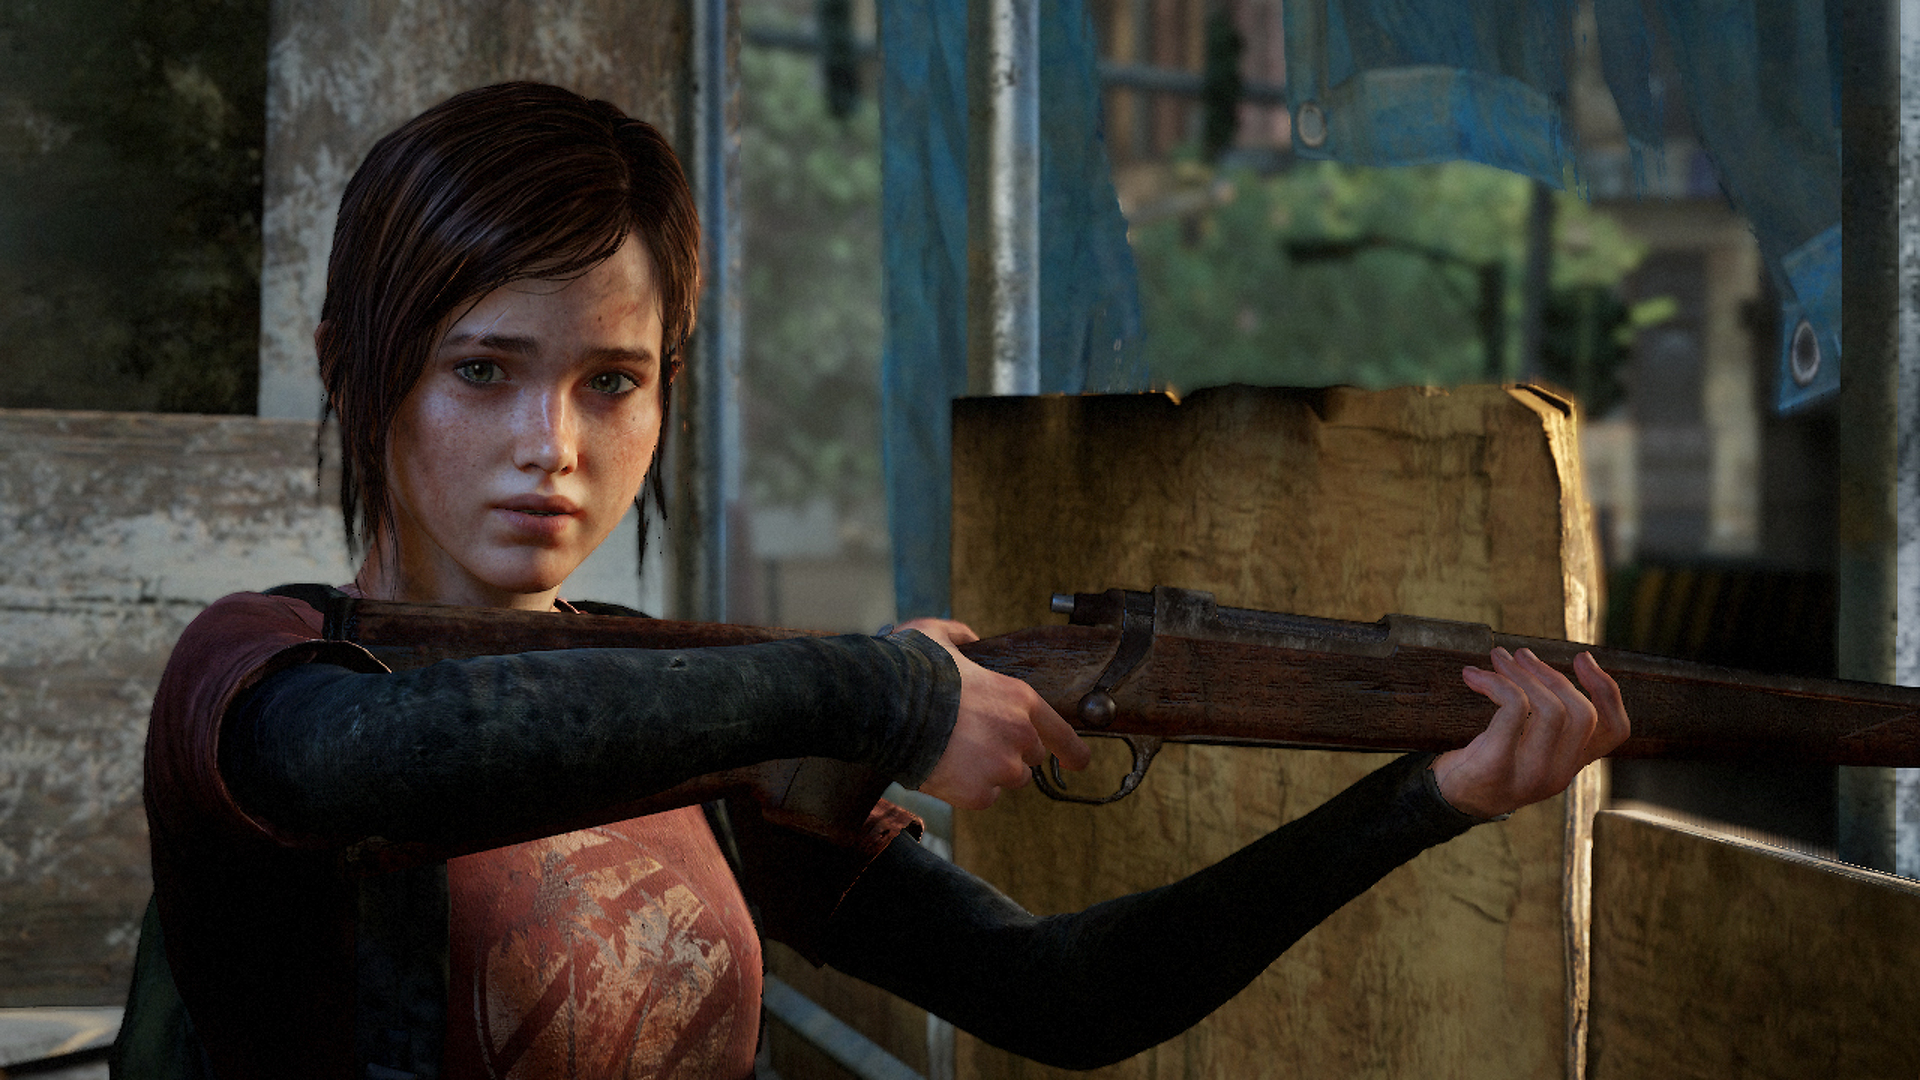 Ellie The Last Of Us Wallpaper: The Last Of Us HD Wallpaper